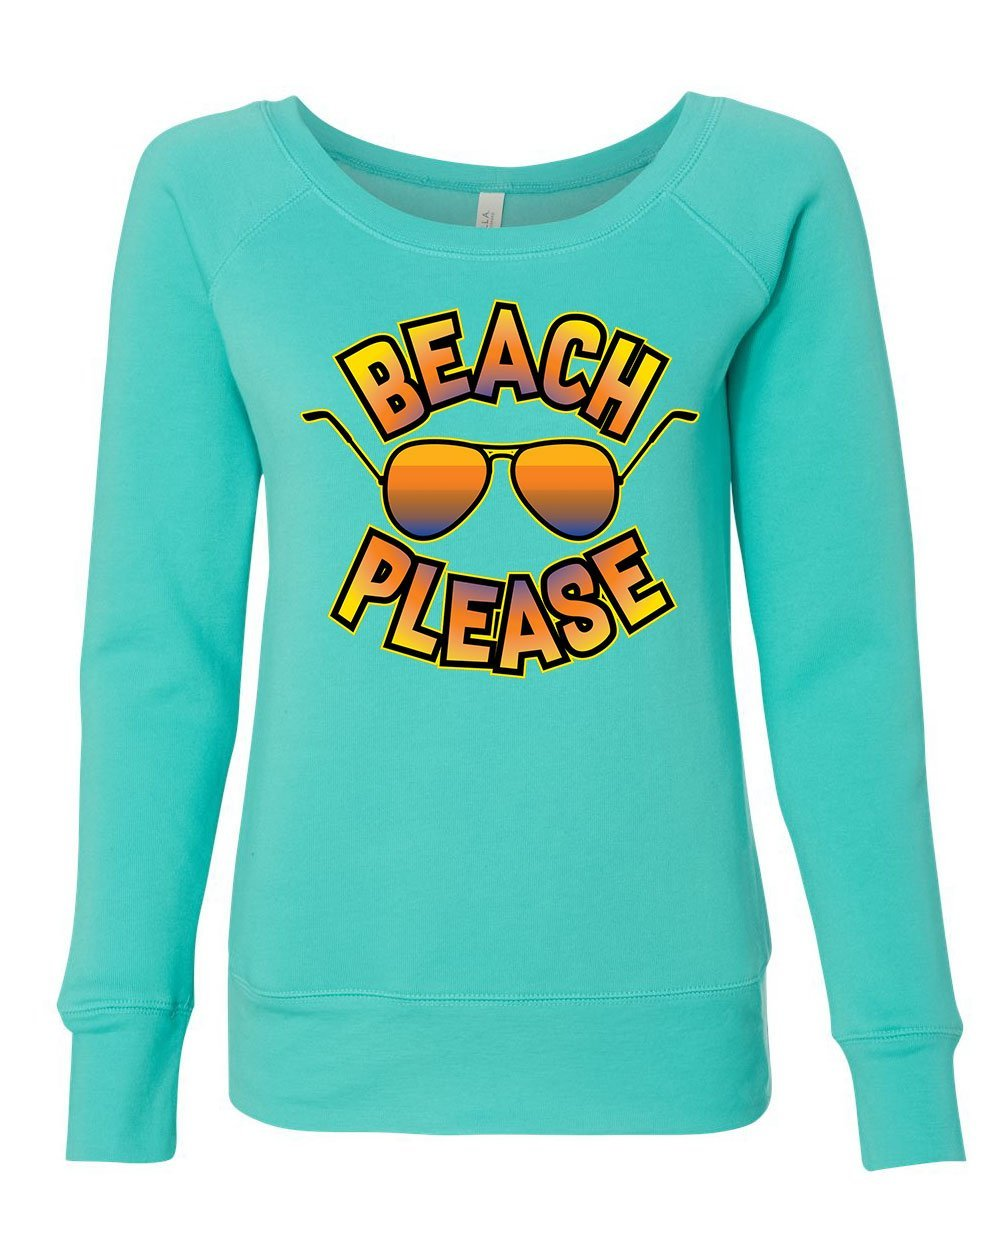 Beach Please Women's Sweatshirt Funny Sunshine Glasses Summer Time Vacation Teal S